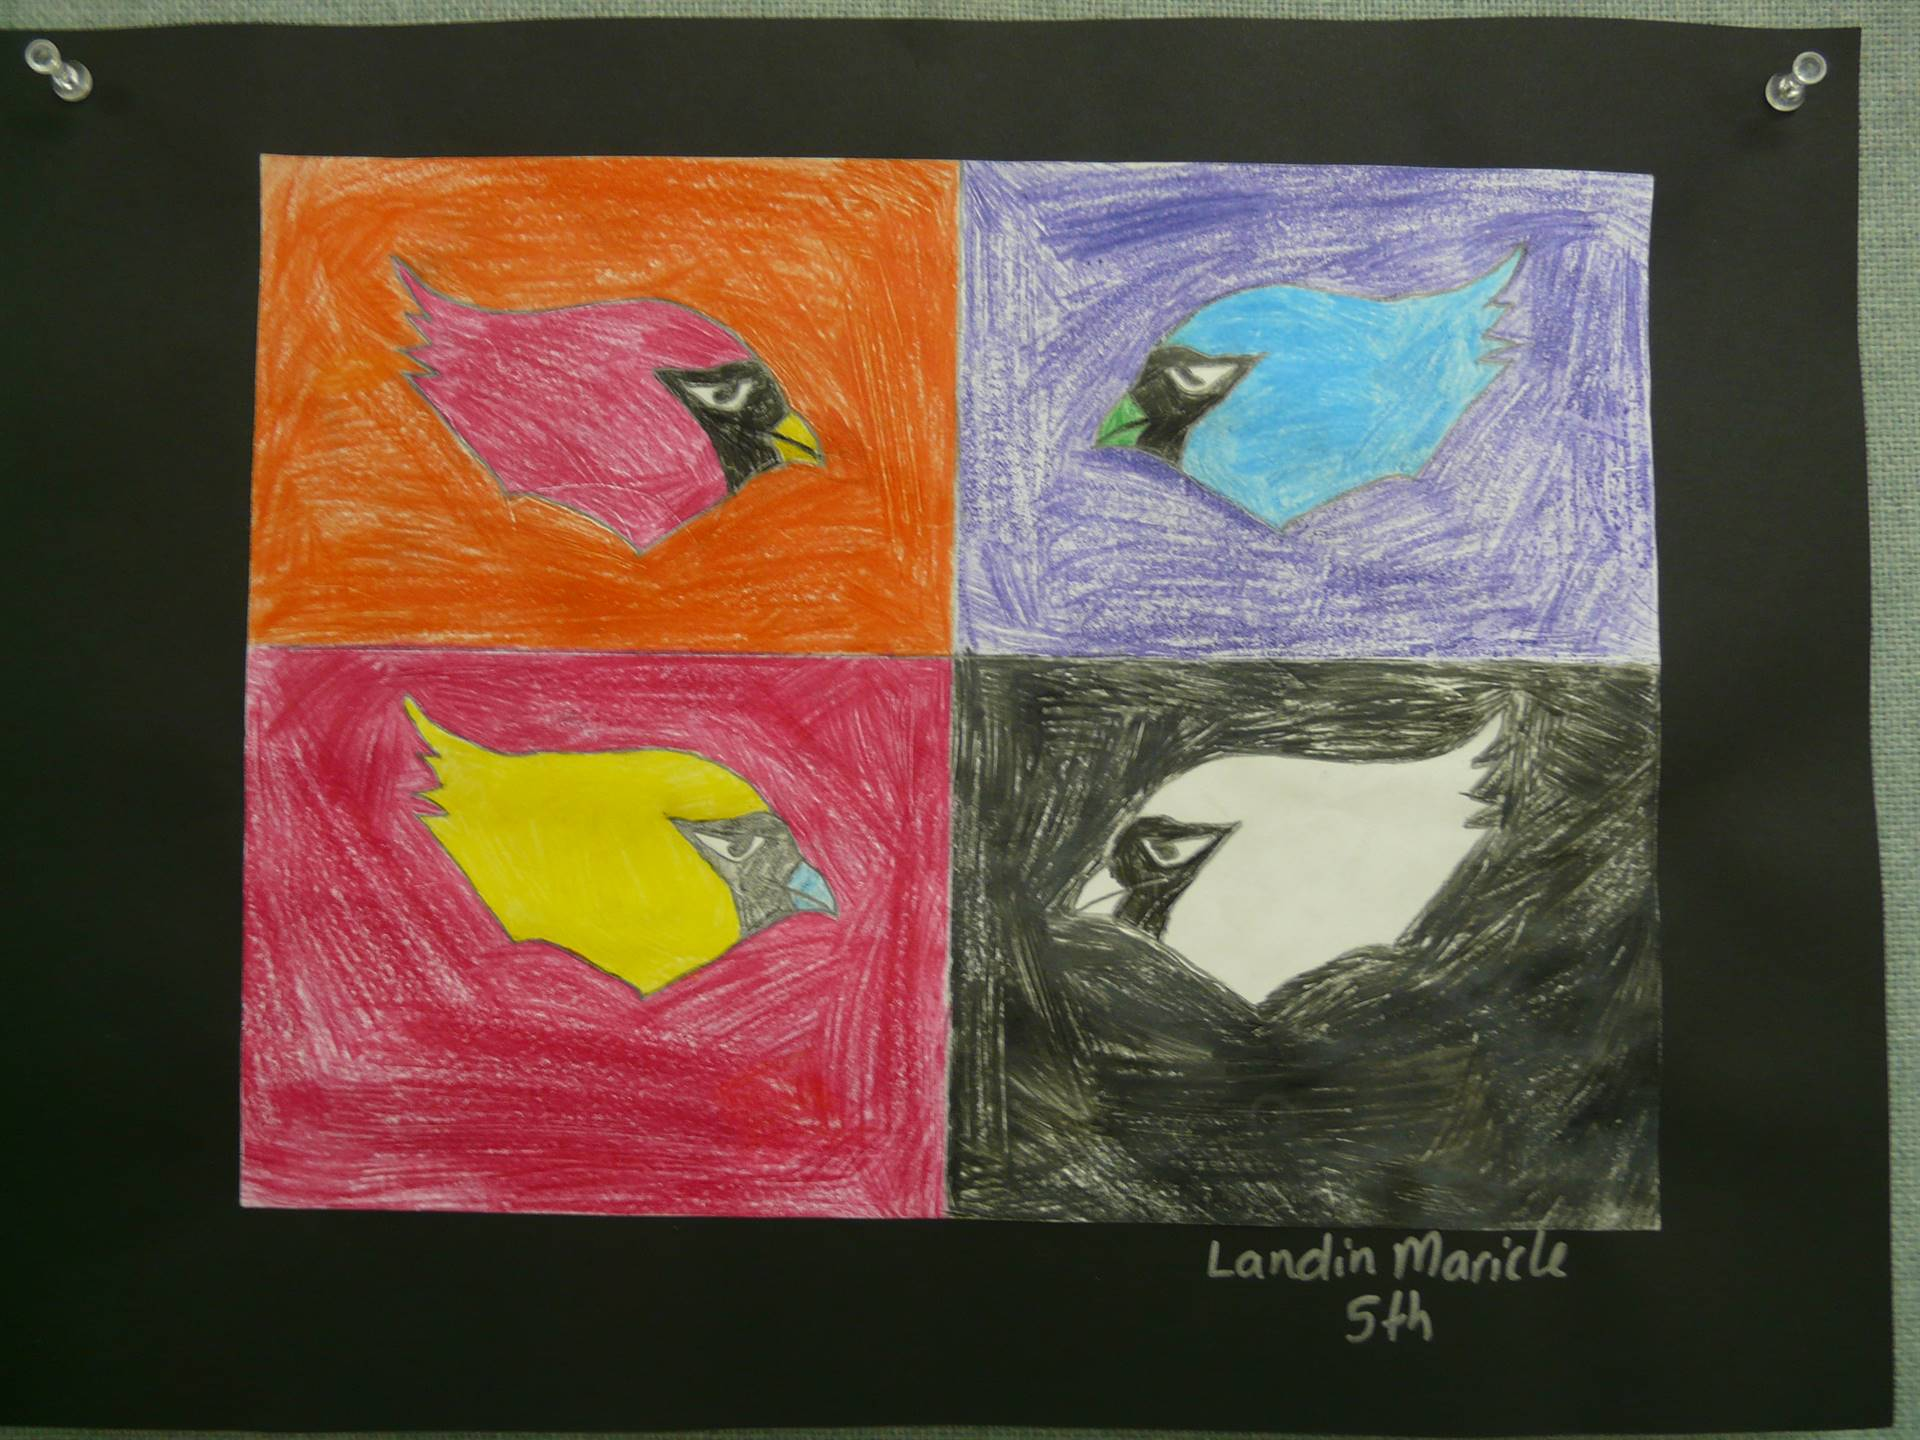 4 different color heads of a bird in boxes